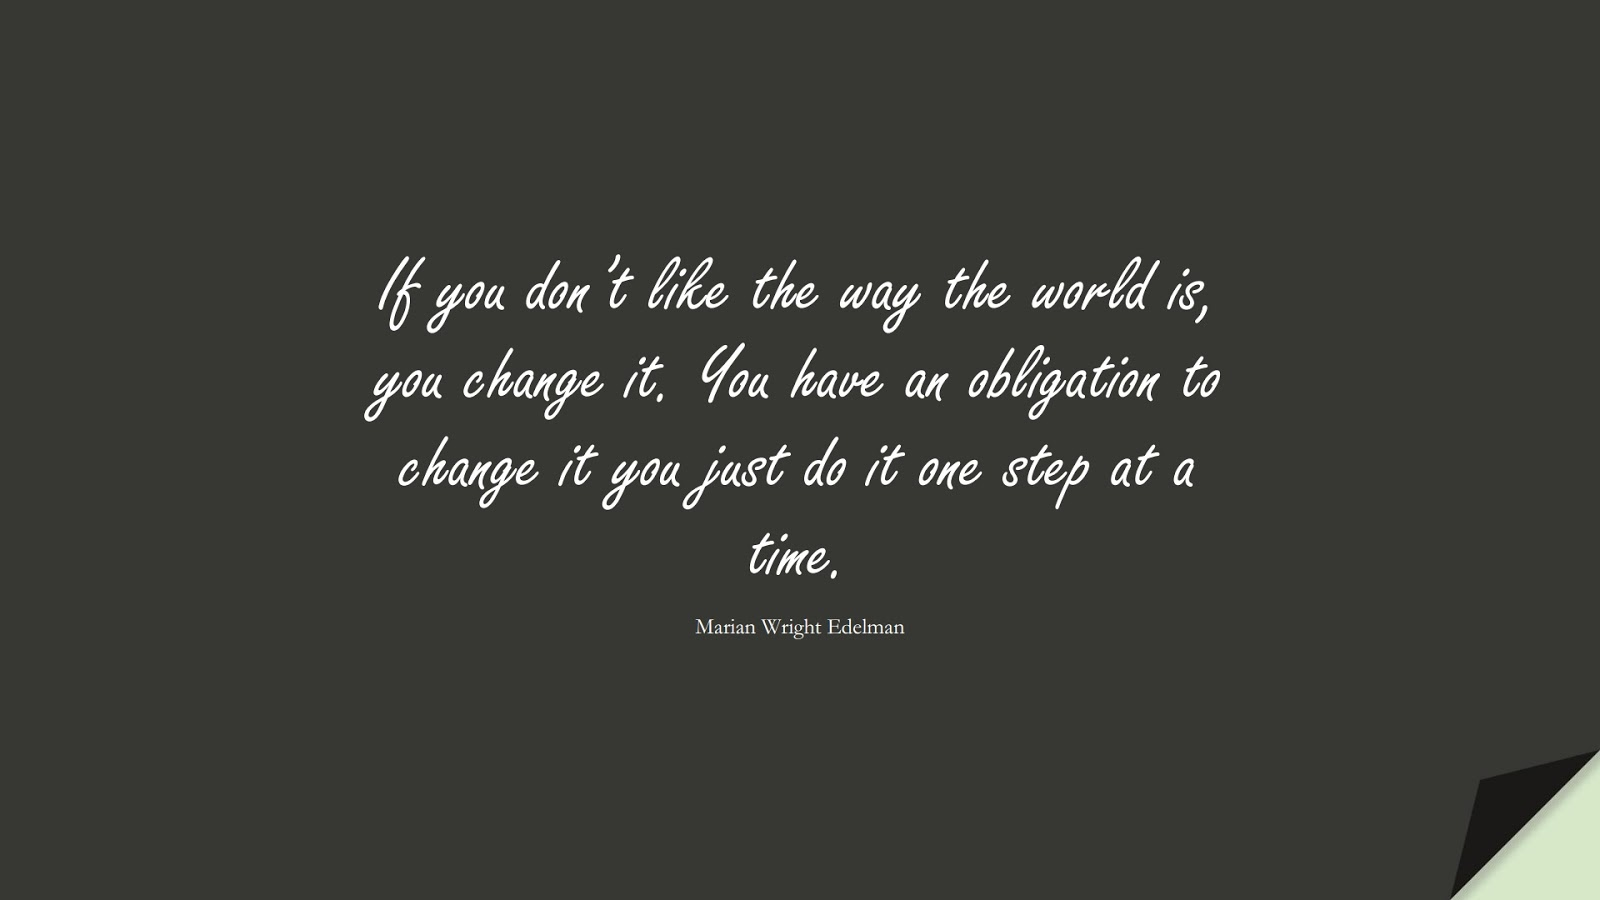 If you don't like the way the world is, you change it. You have an obligation to change it you just do it one step at a time. (Marian Wright Edelman);  #ChangeQuotes